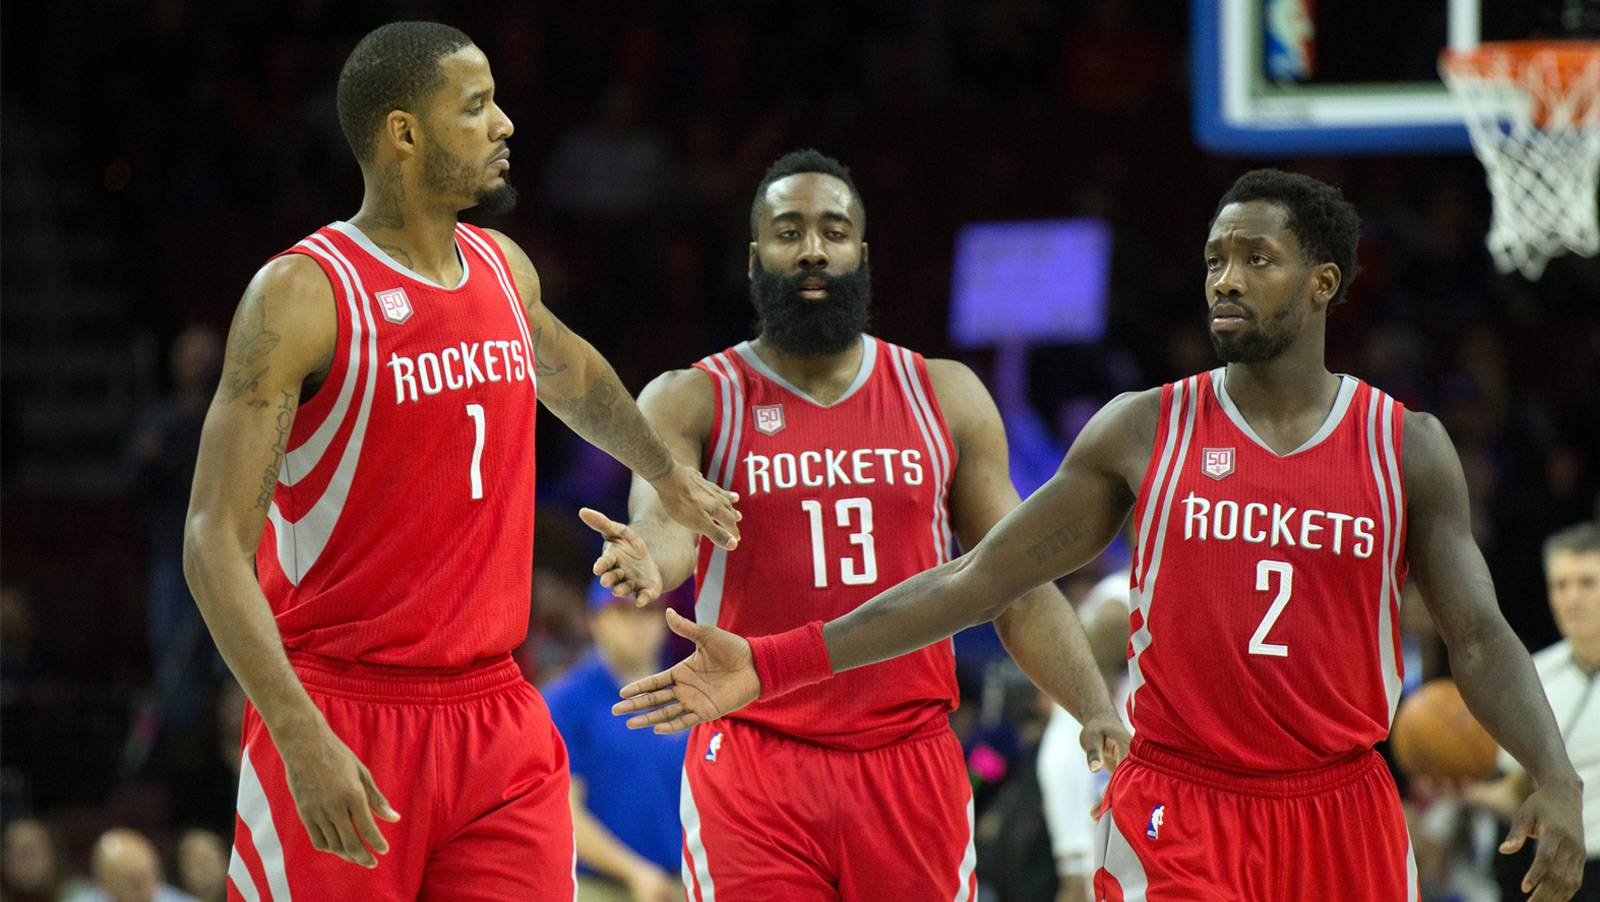 Rockets see odds continue to improve after 11-game winning streak